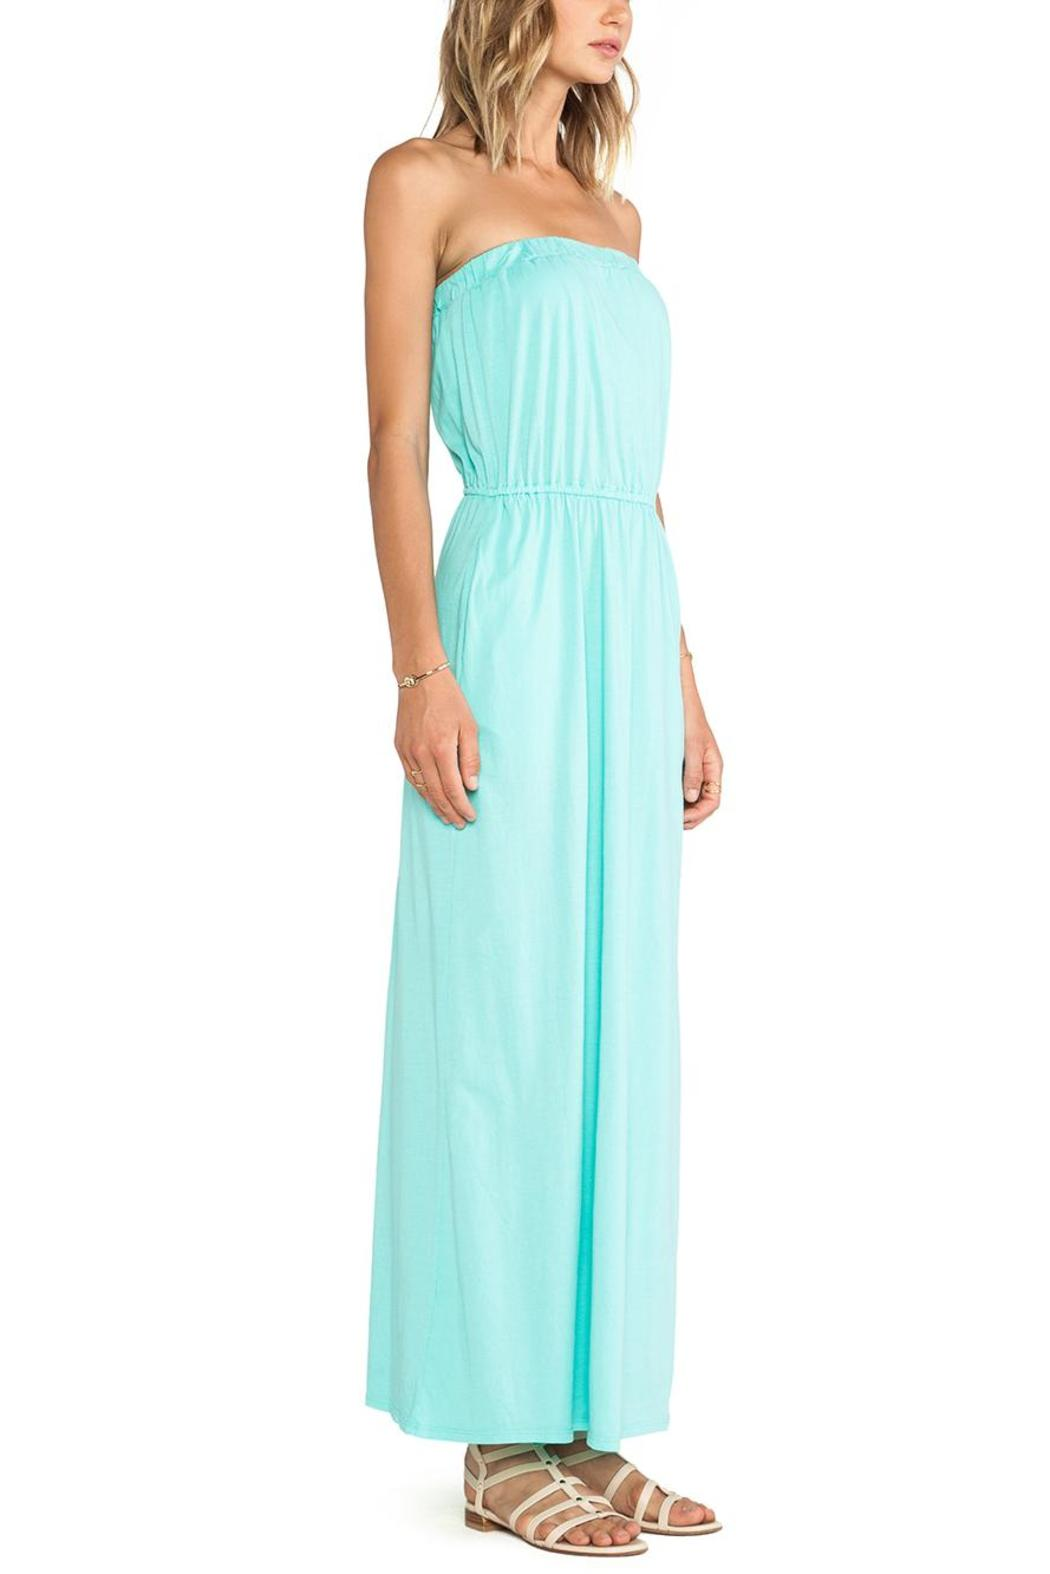 Bobi Los Angeles Aqua Maxi Dress from Wicker Park by Mulberry &amp- Me ...